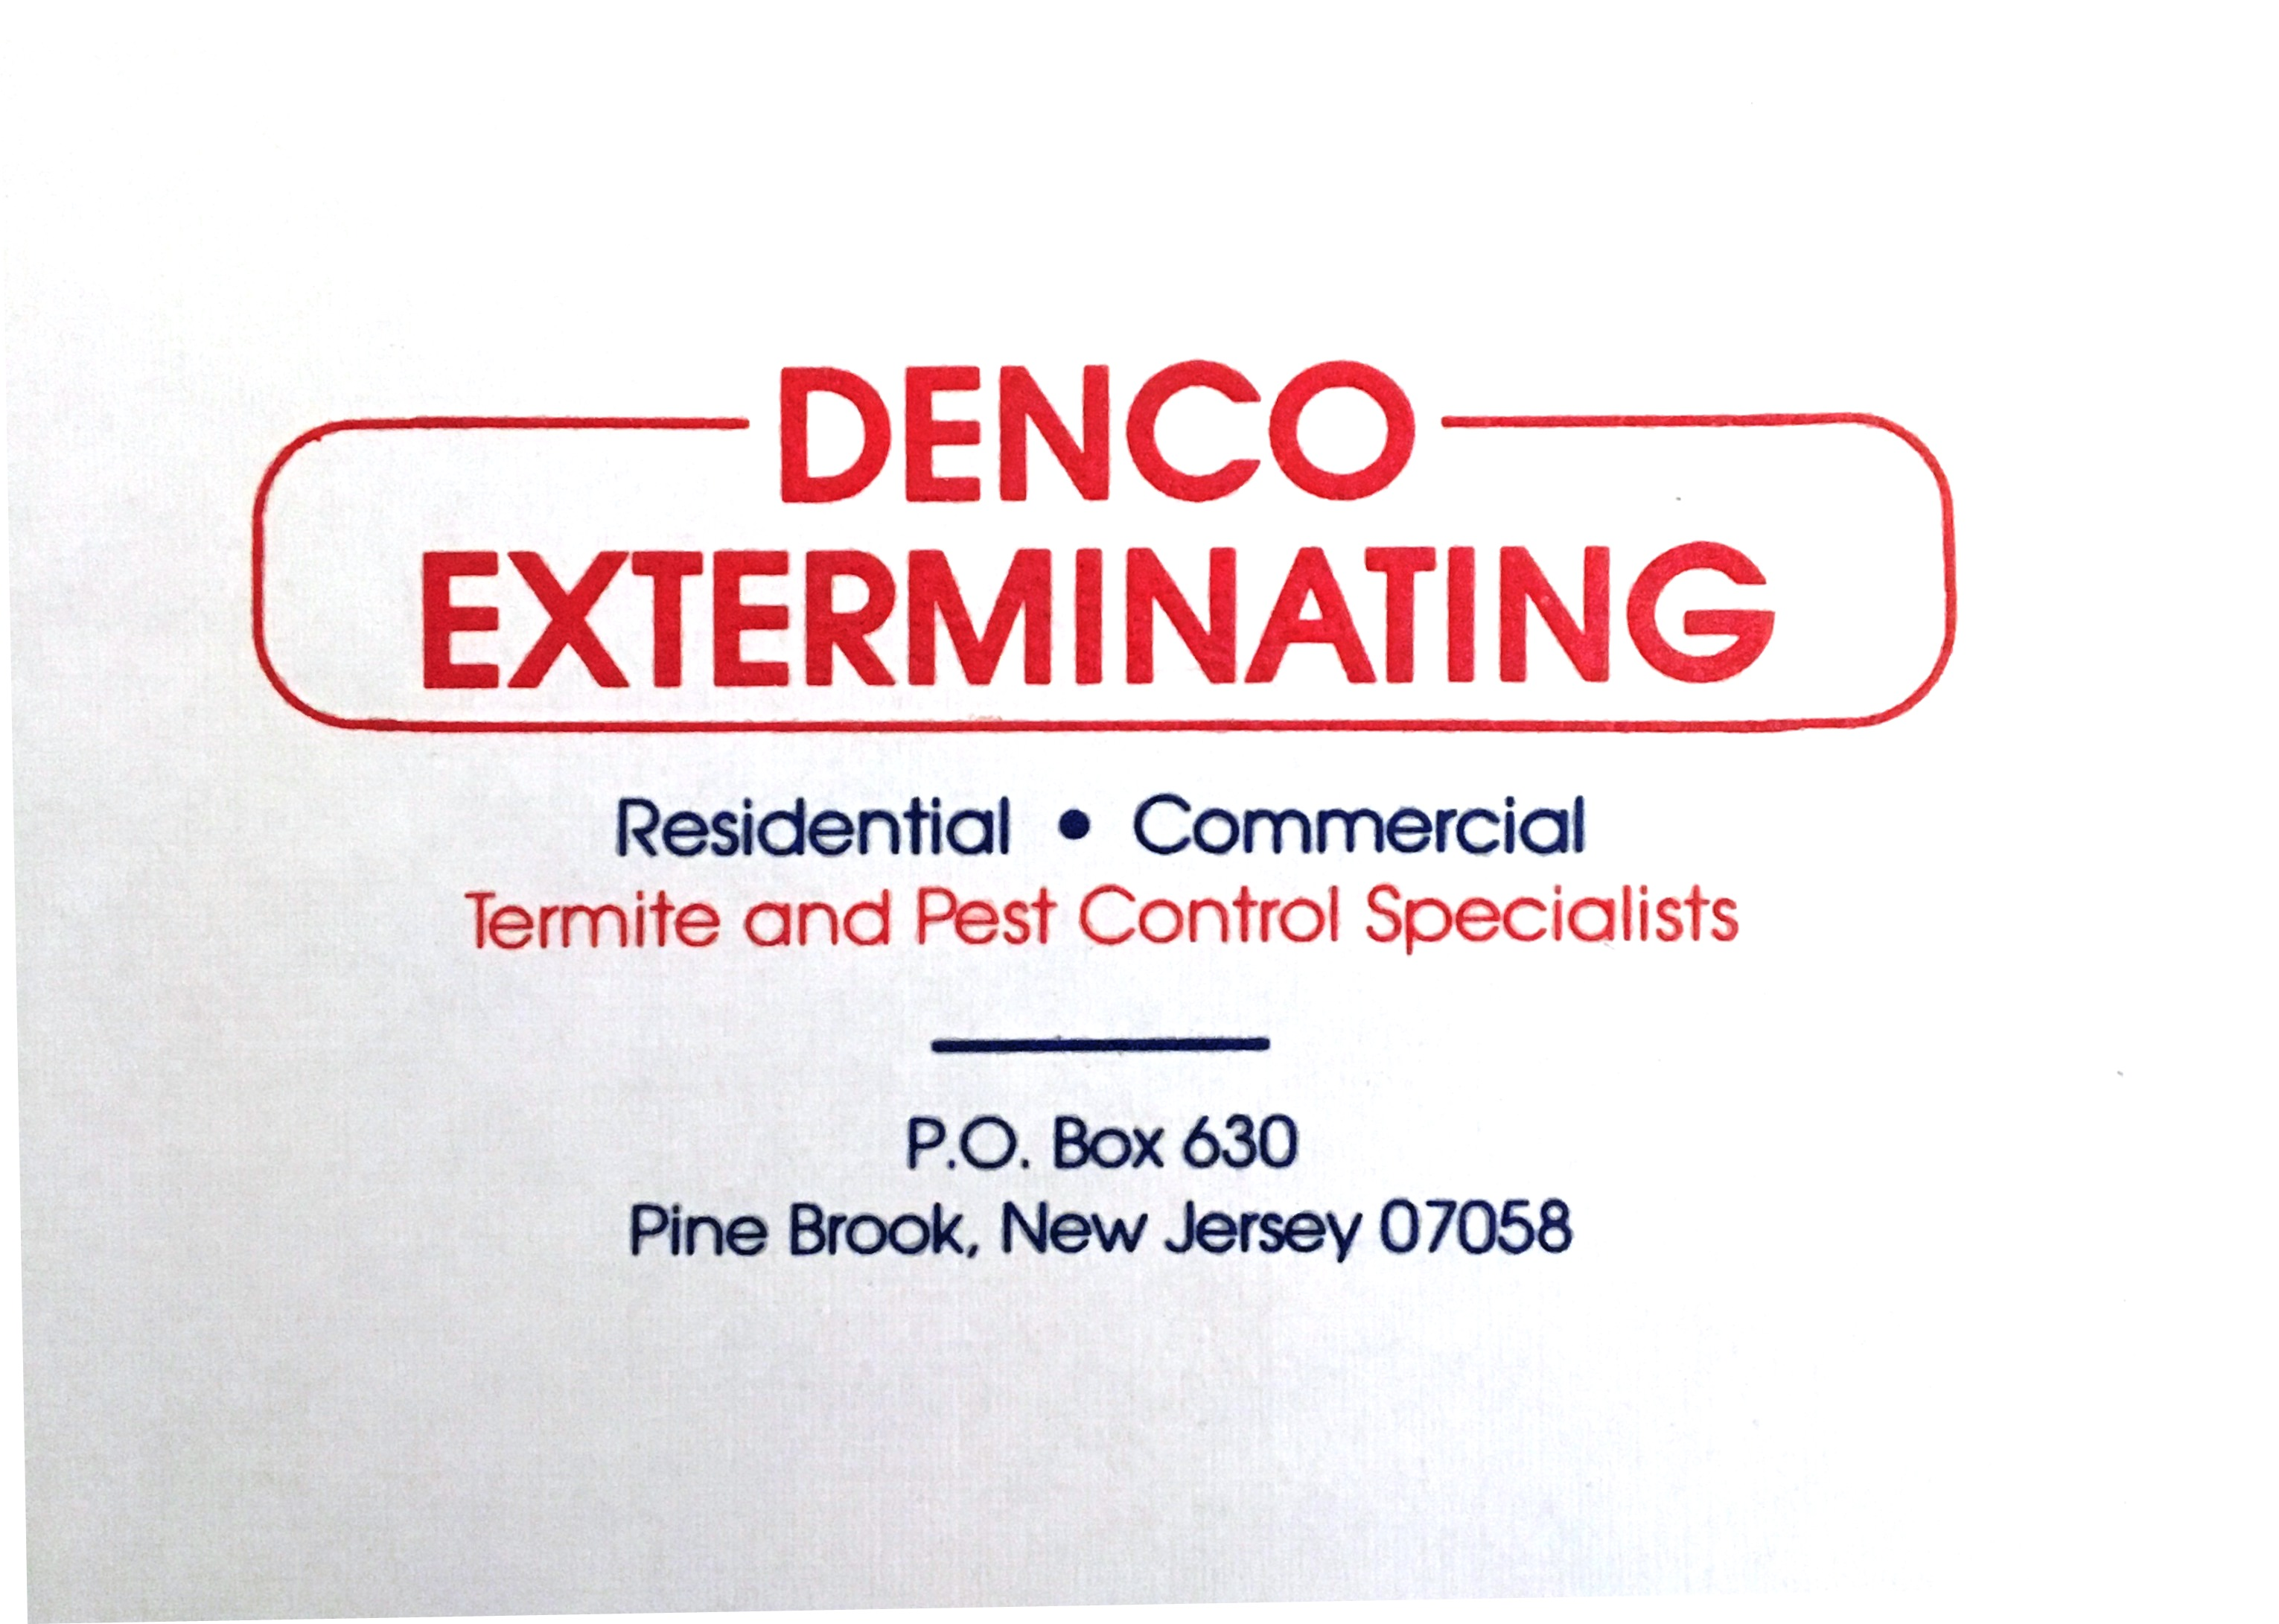 Denco Exterminating Co Inc. image 0